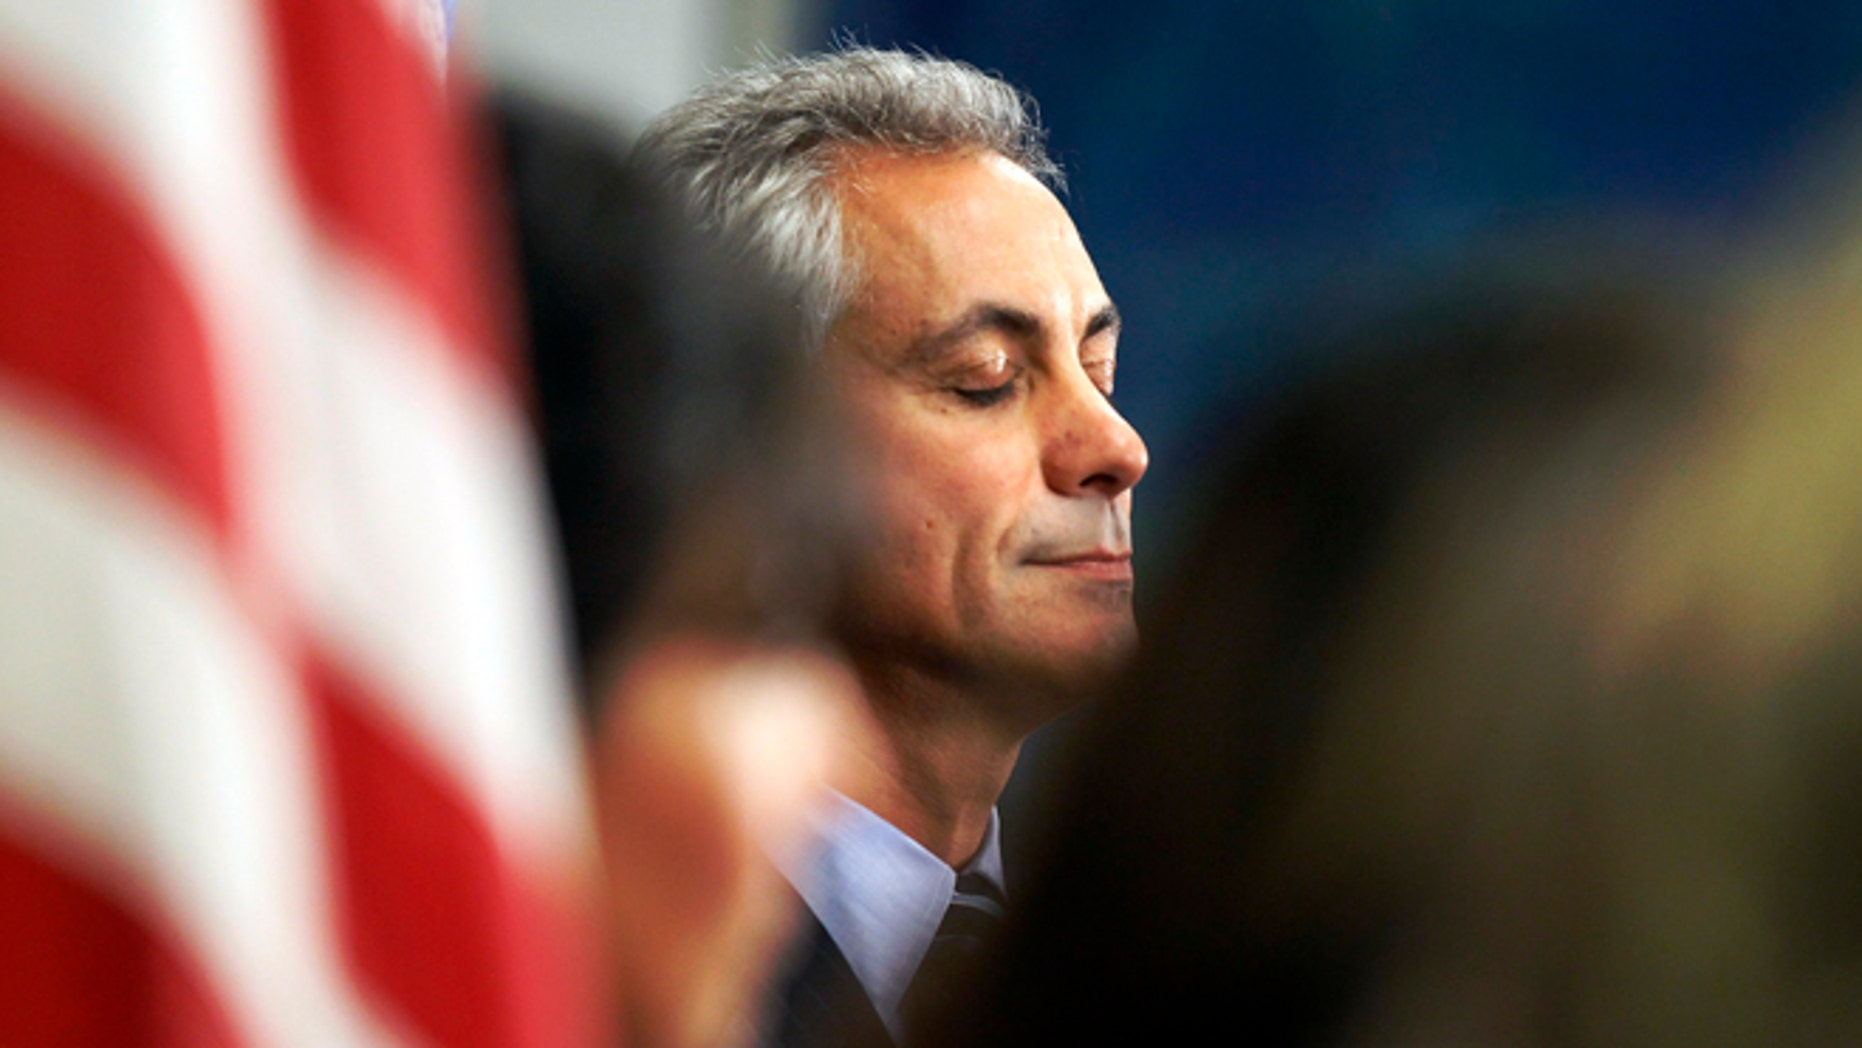 Sept. 18: Chicago Mayor Rahm Emanuel closes his eyes during a news conference after the Chicago Teacher's Union House of Delegates voted to suspend their strike against the school system in Chicago.